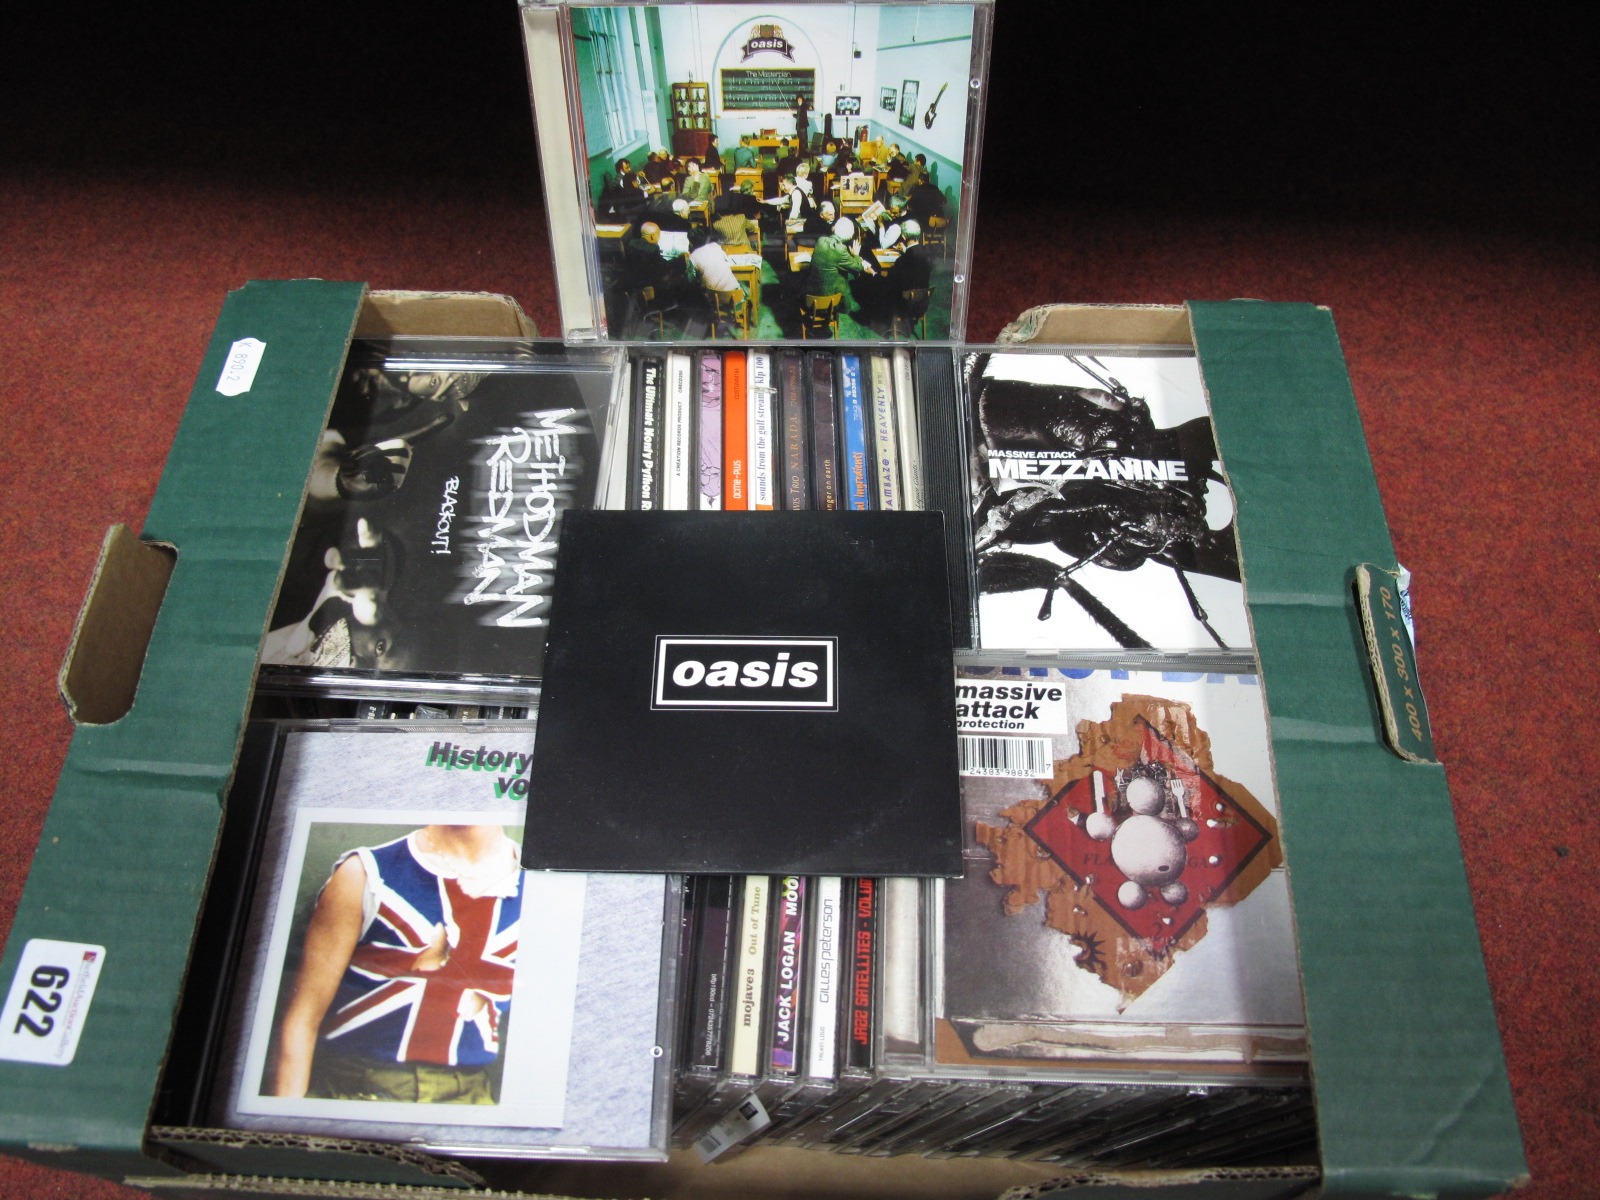 Lot 622 - A Collection of Over Sixty CD's (Promo Only/'Not For Sale' Issues) - Oasis 'Masterplan' and Oasis